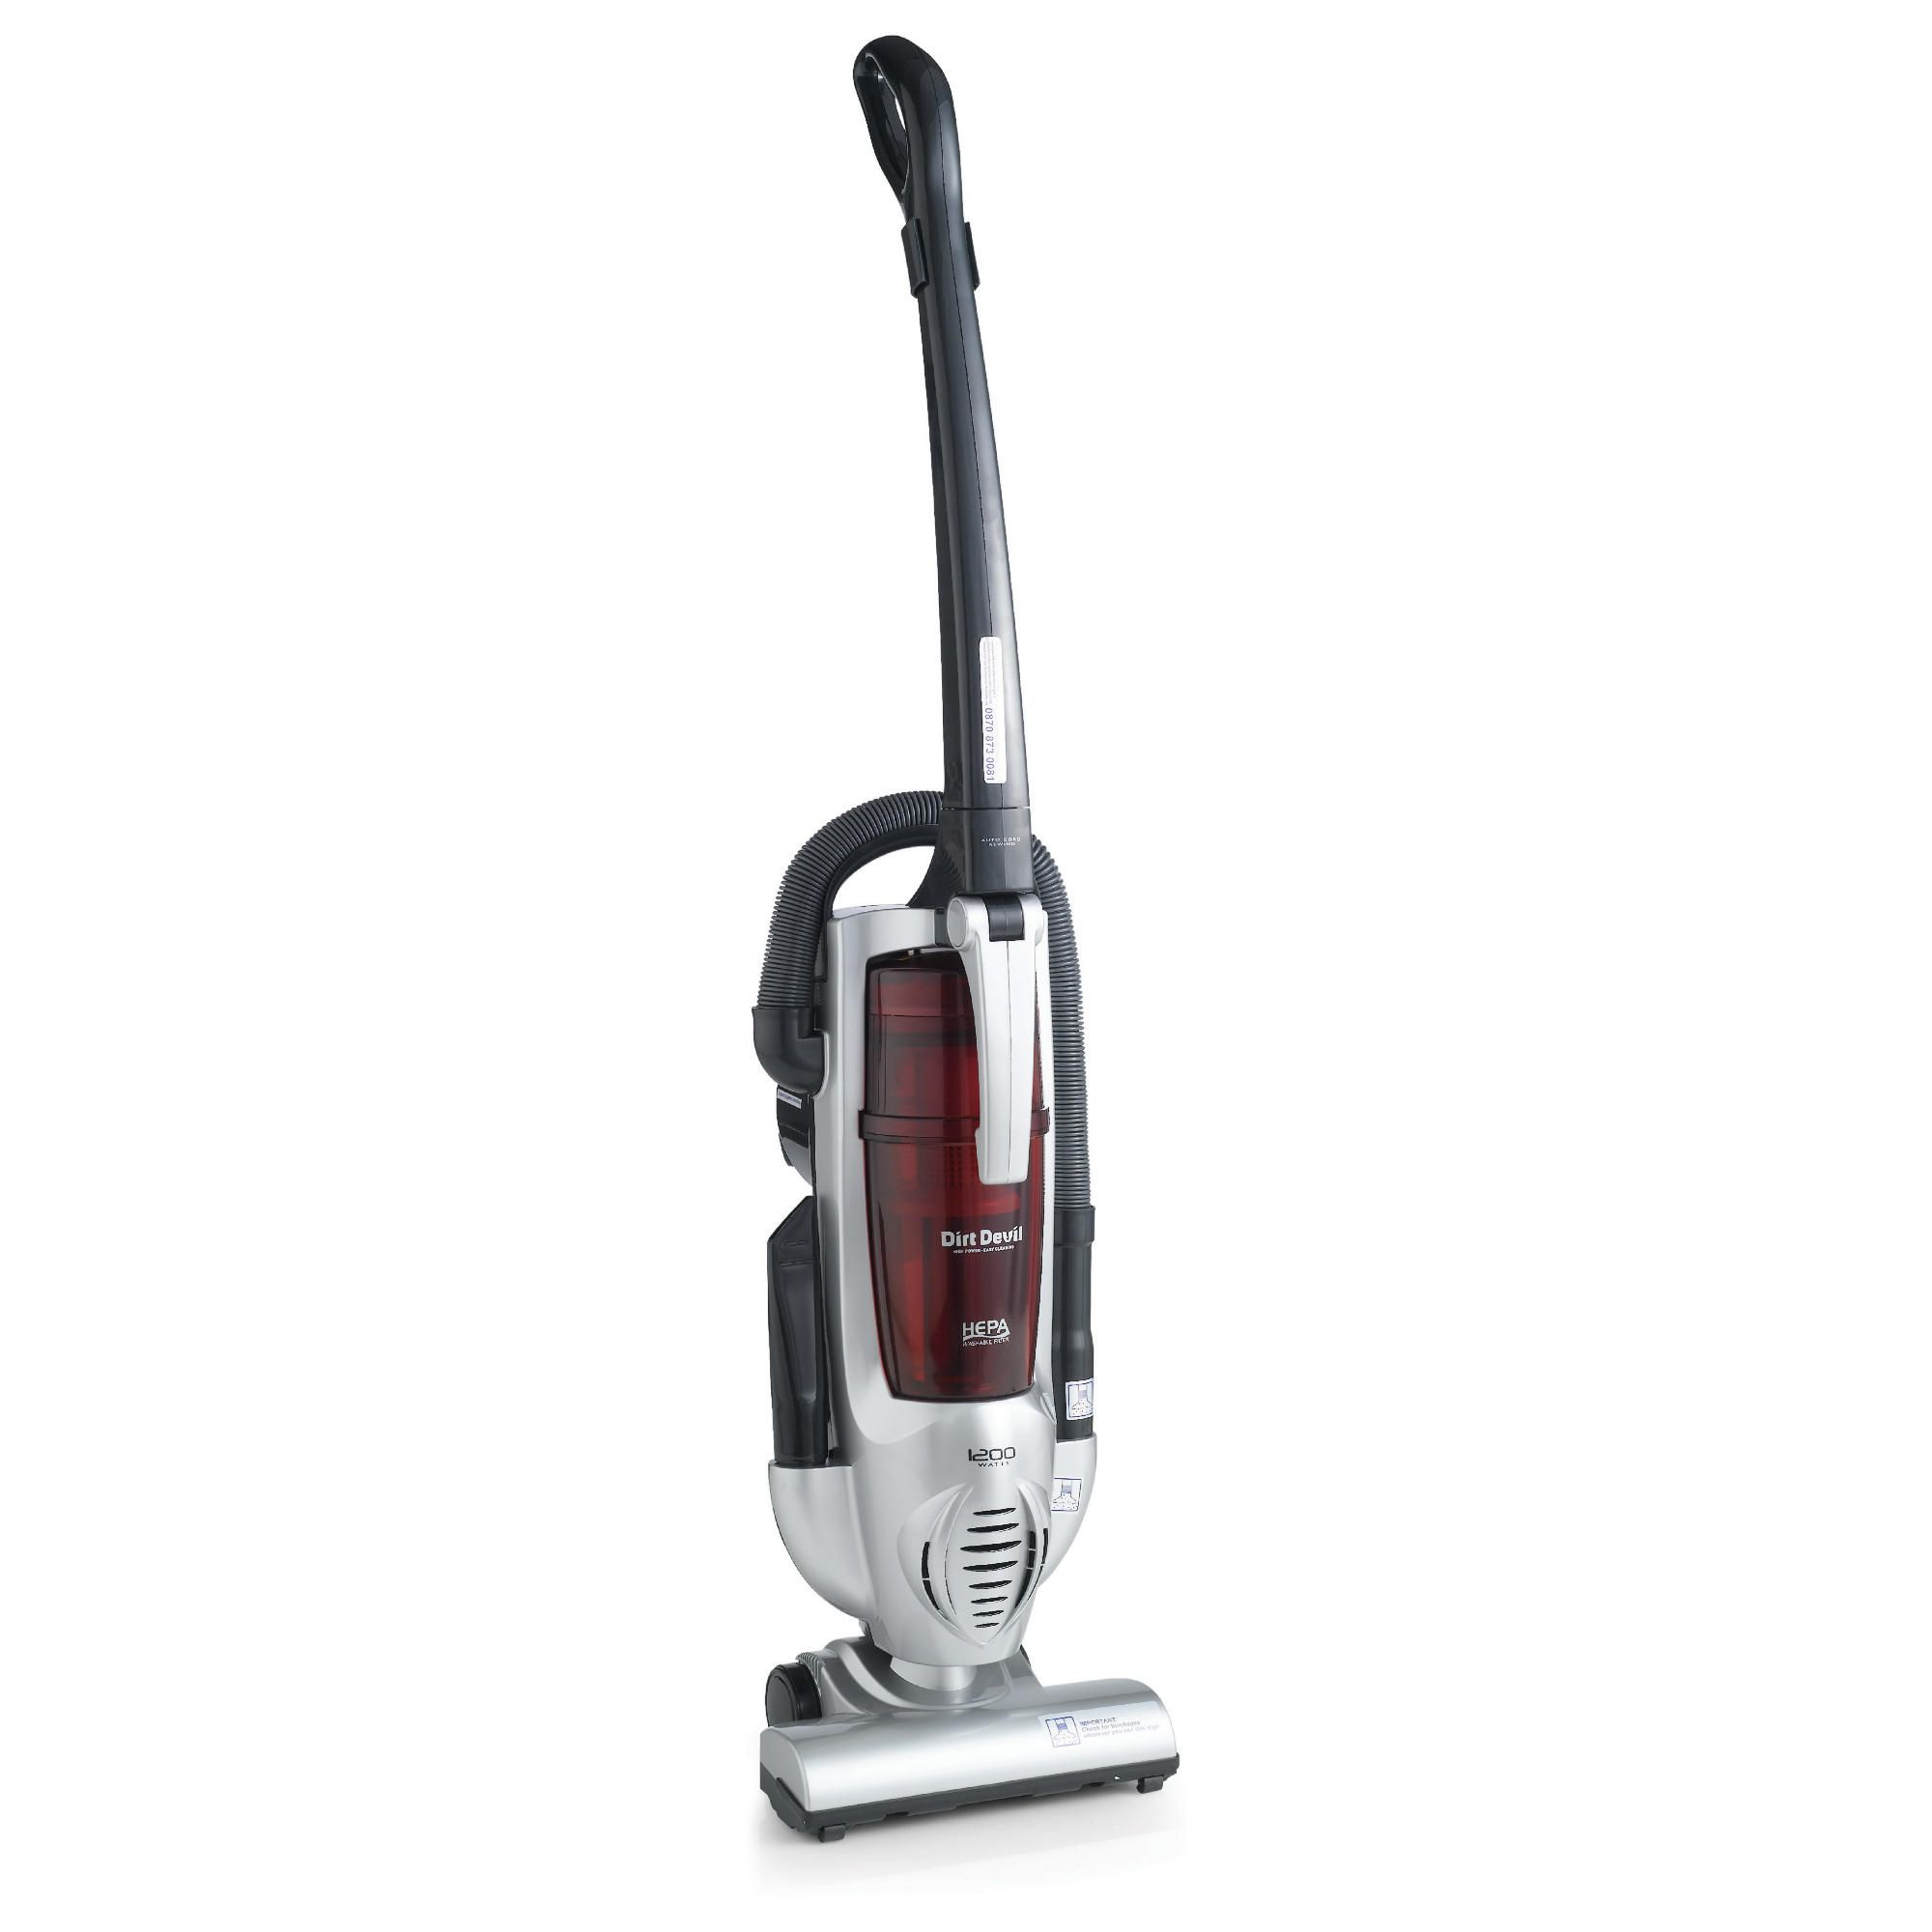 Dirt Devil Vac M Images Frompo 1